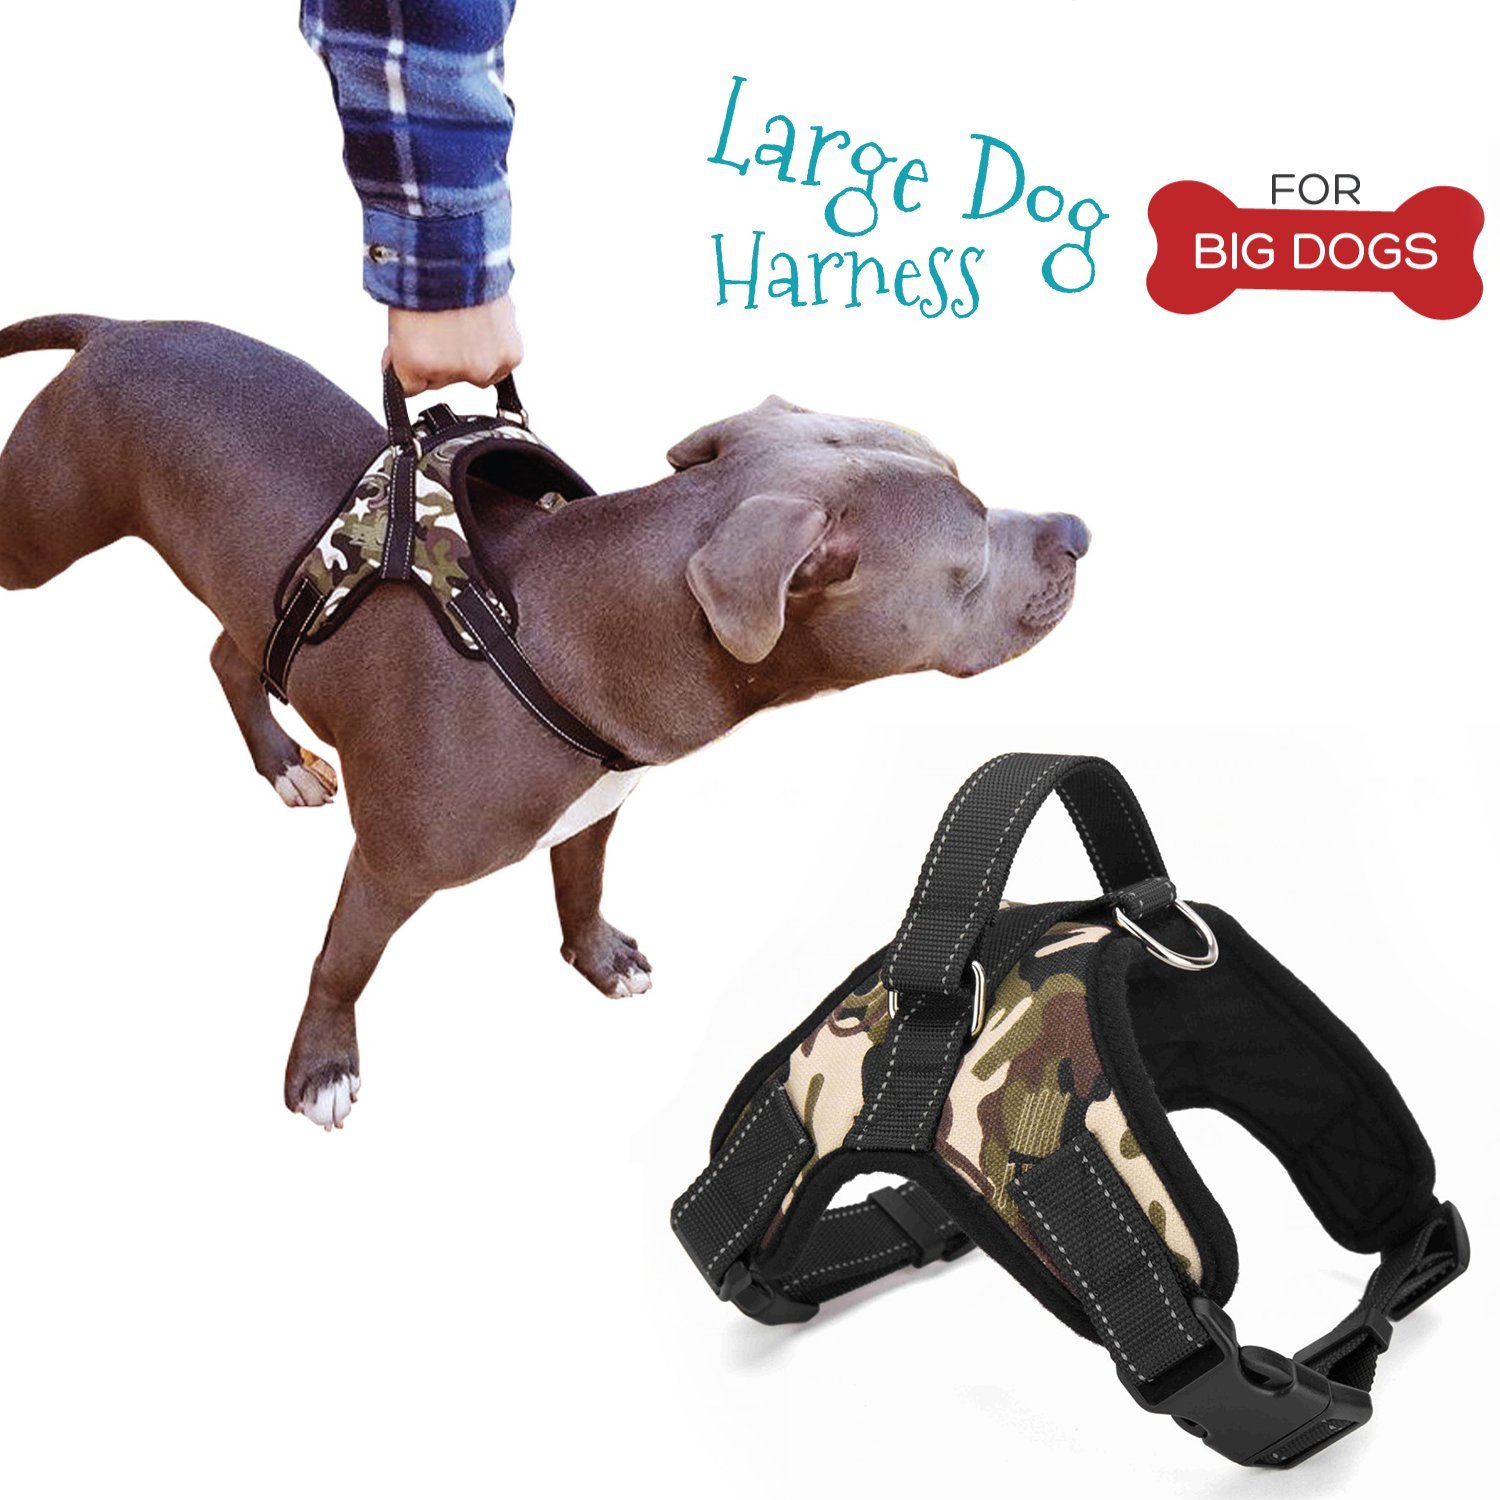 Amazon.com : Pet rs Stuff Dog Harness XLarge | Soft-Padded ...